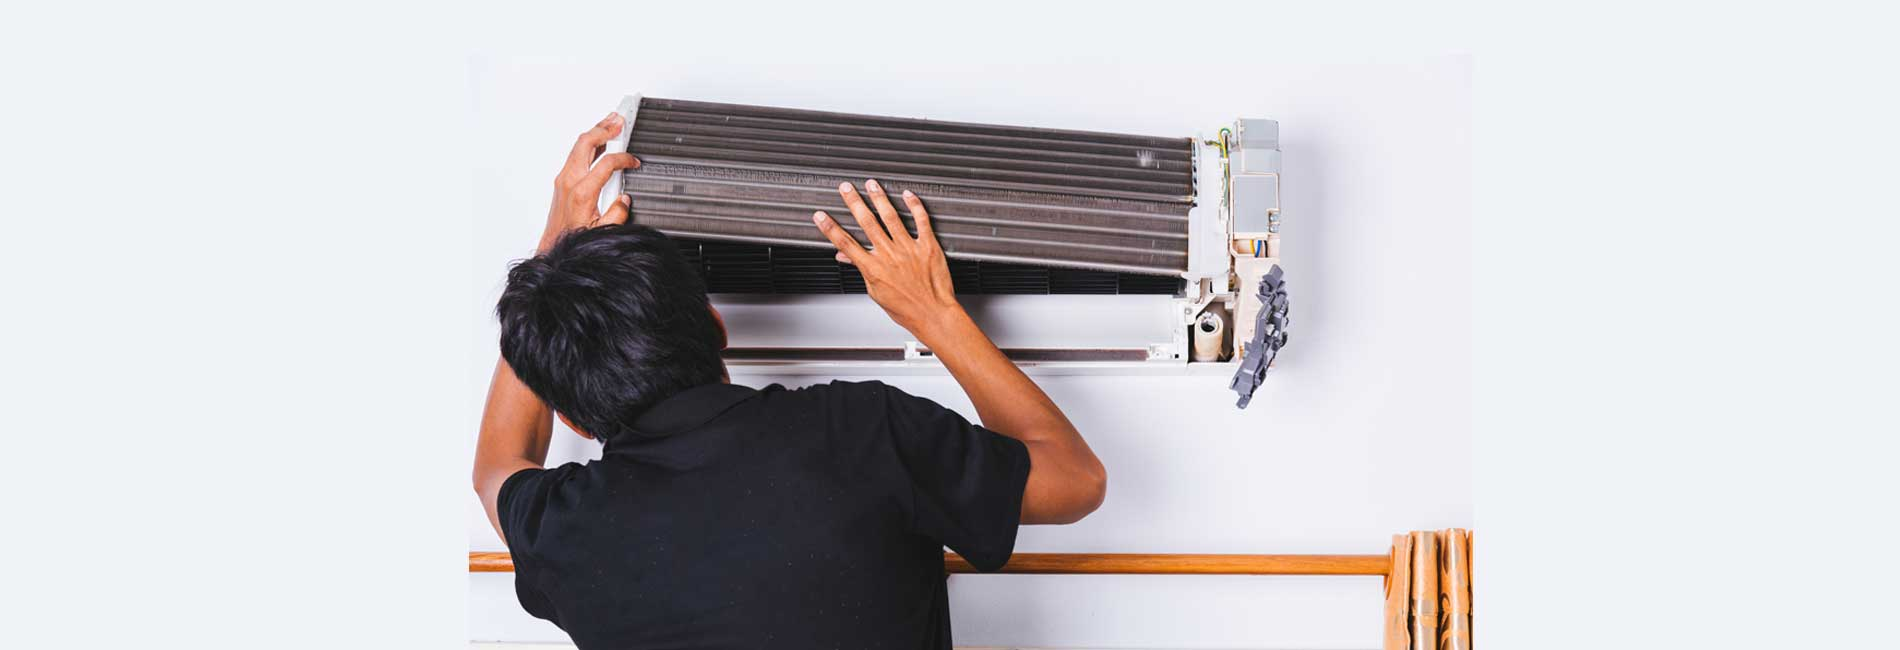 Panasonic AC Repair in Mogappair West